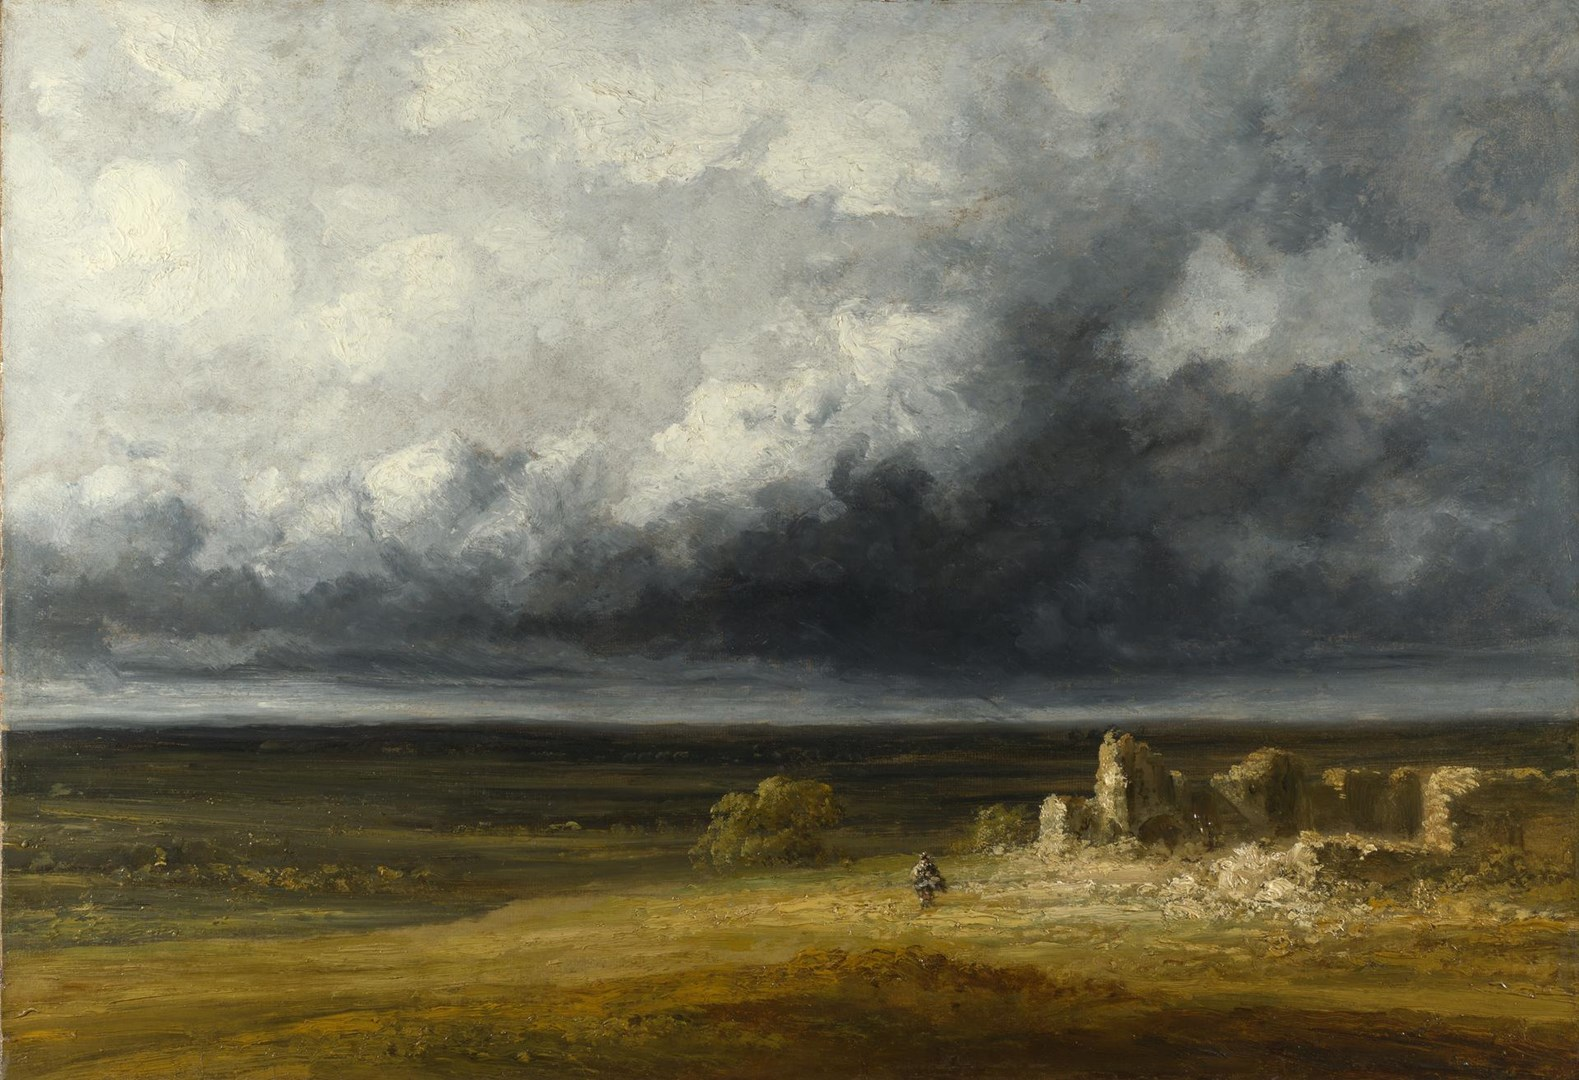 Stormy Landscape with Ruins on a Plain by Probably by Georges Michel